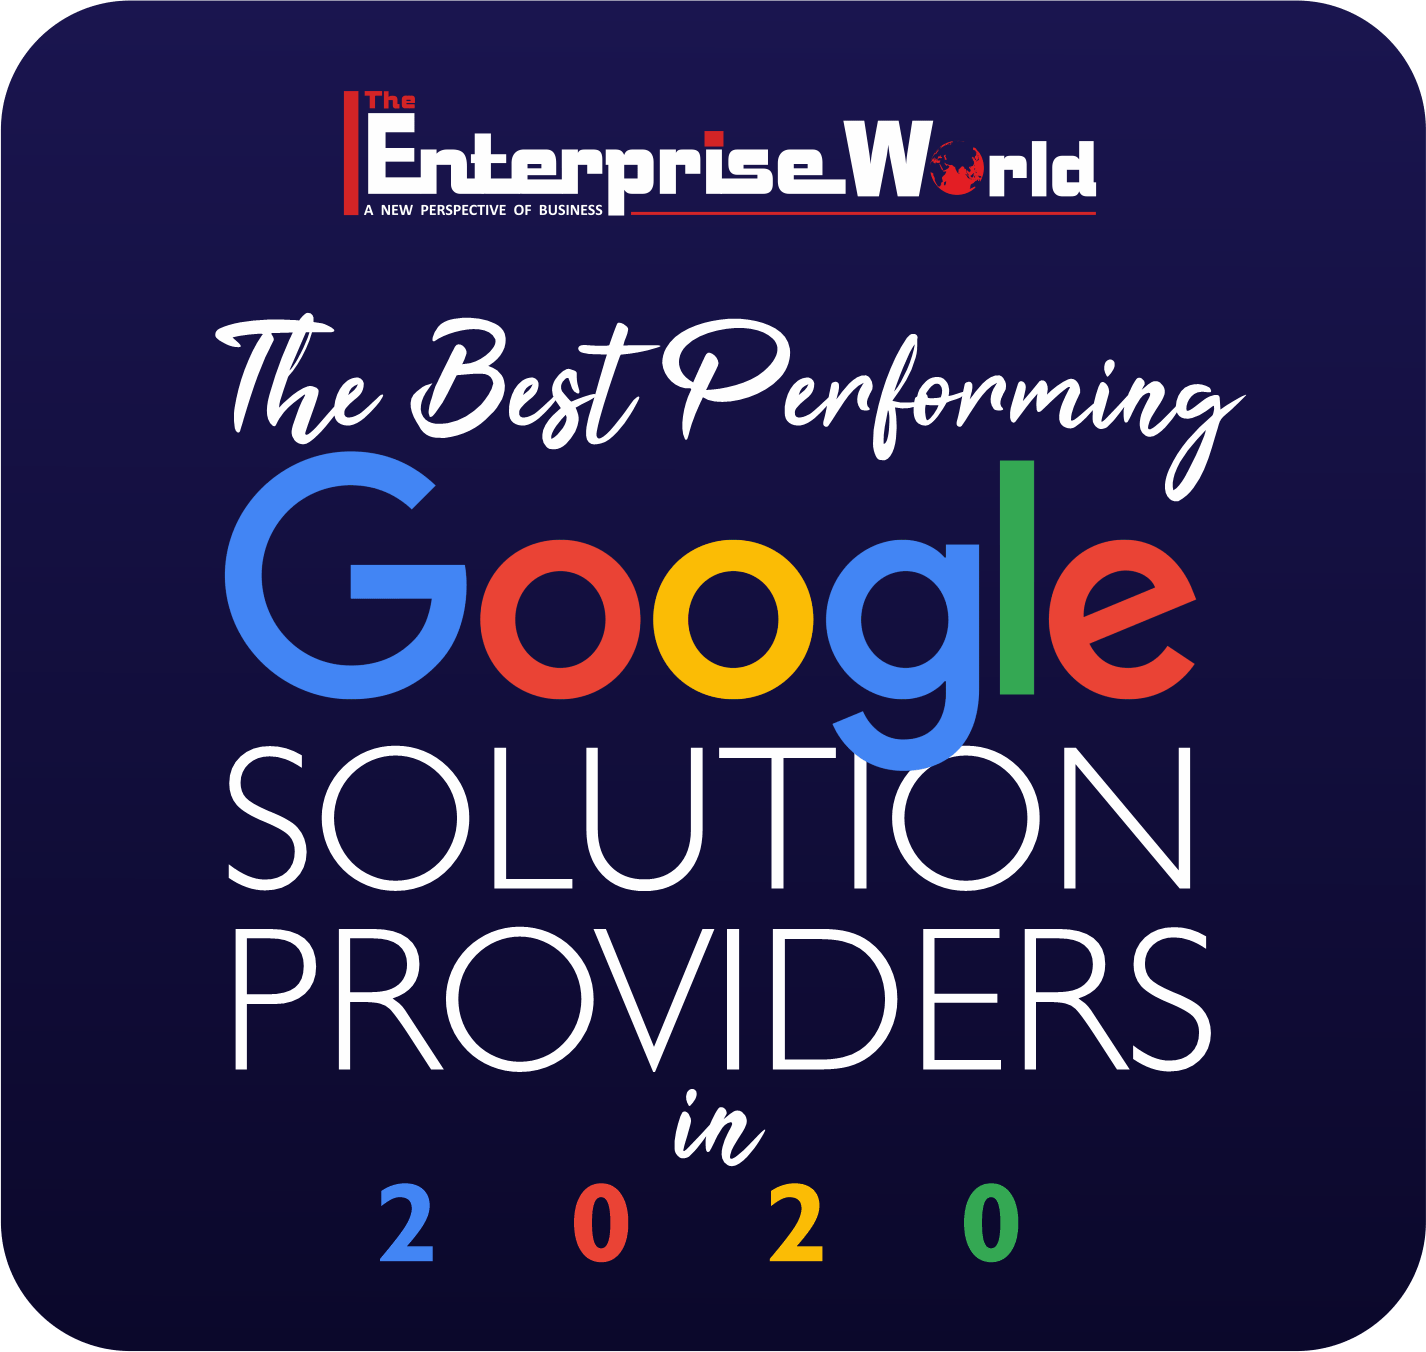 Image recognizing Cameyo's award for Best Performing Google Solution Providers of 2020